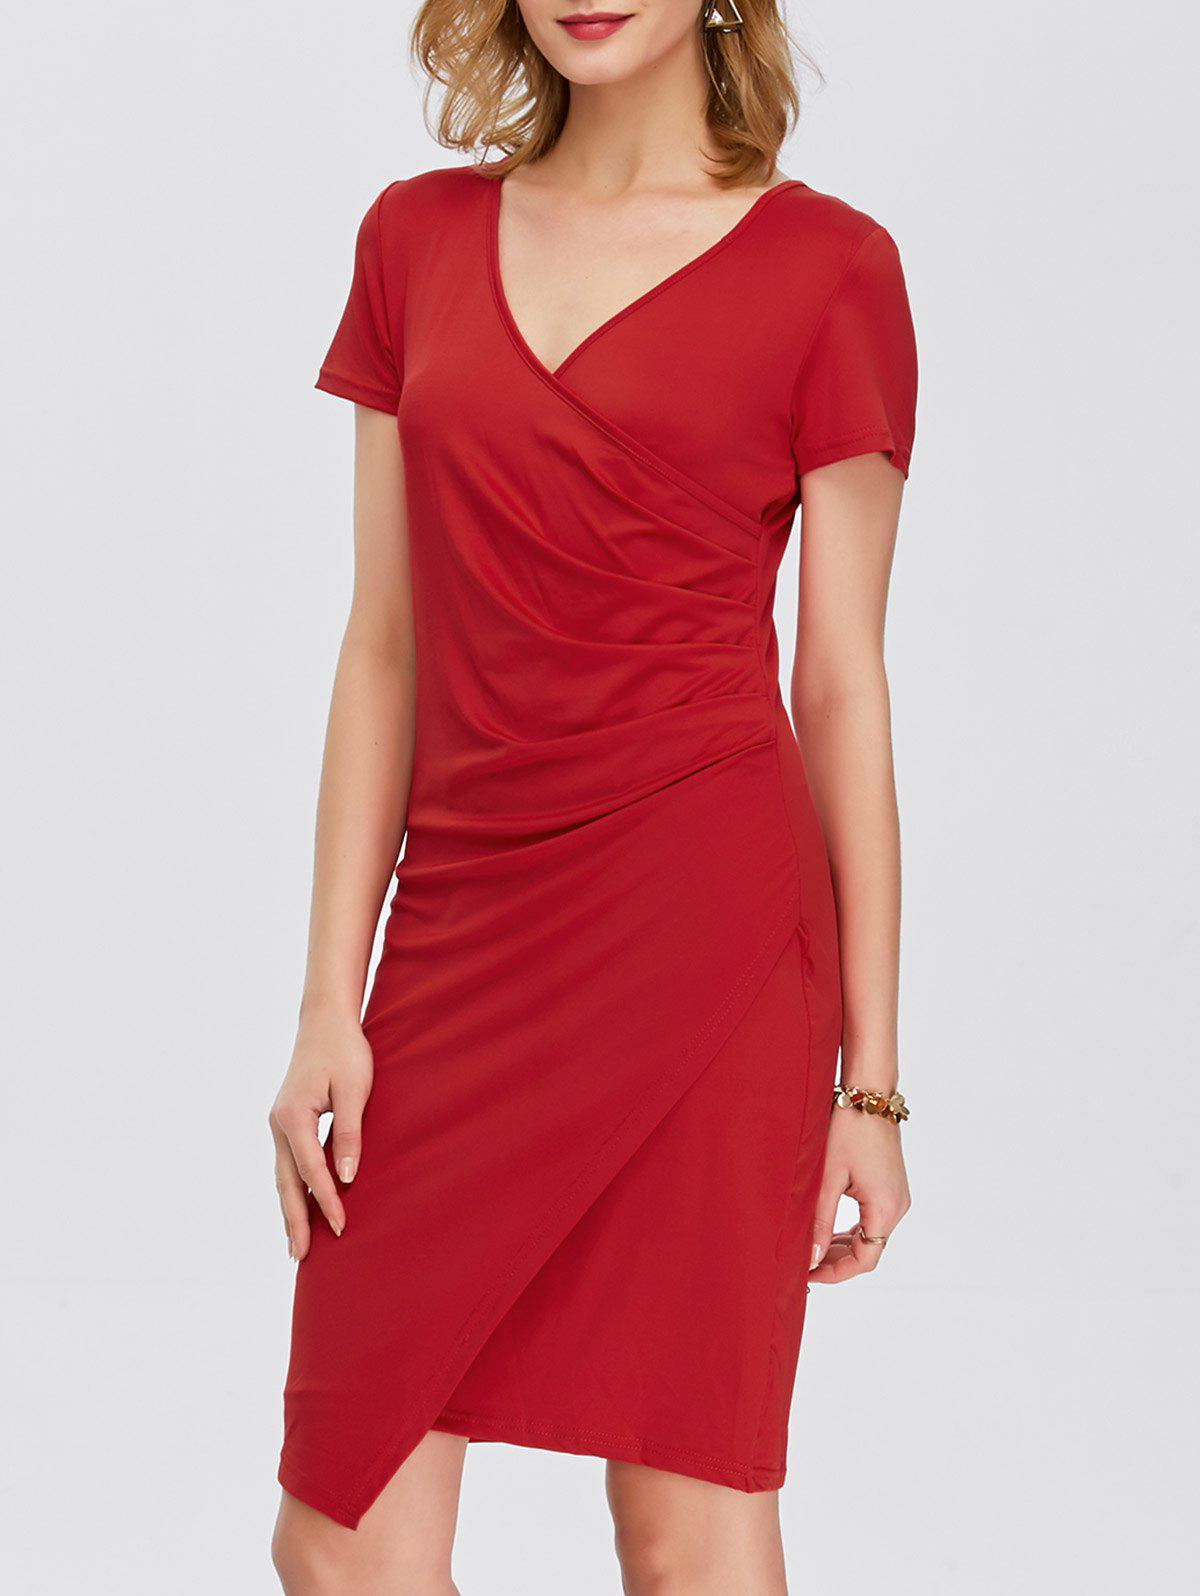 Drape Asymmetrical V Neck Dress With Short Sleeves - RED M